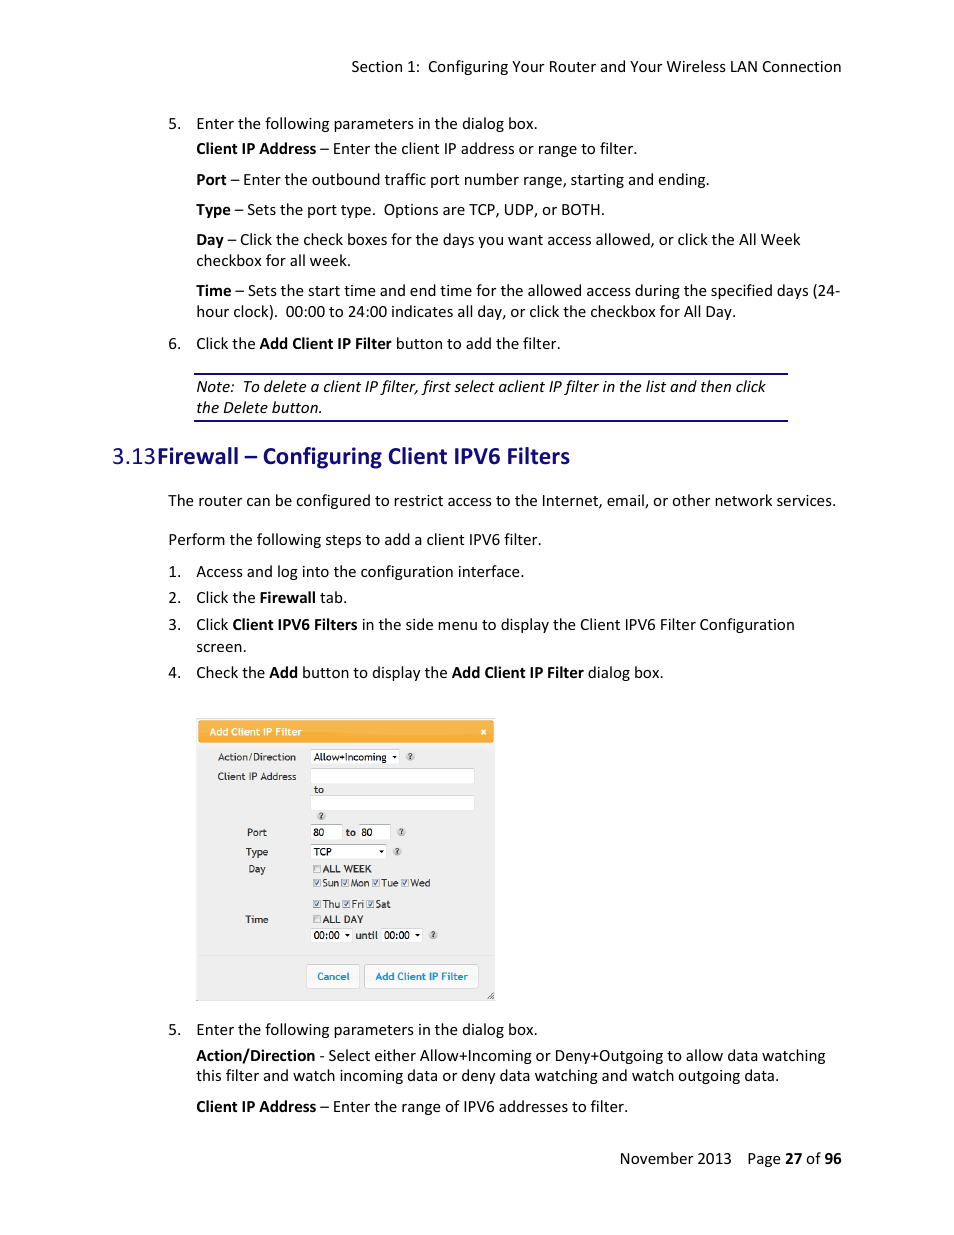 13 Firewall U2013 Configuring Client Ipv6 Filters Manual Guide